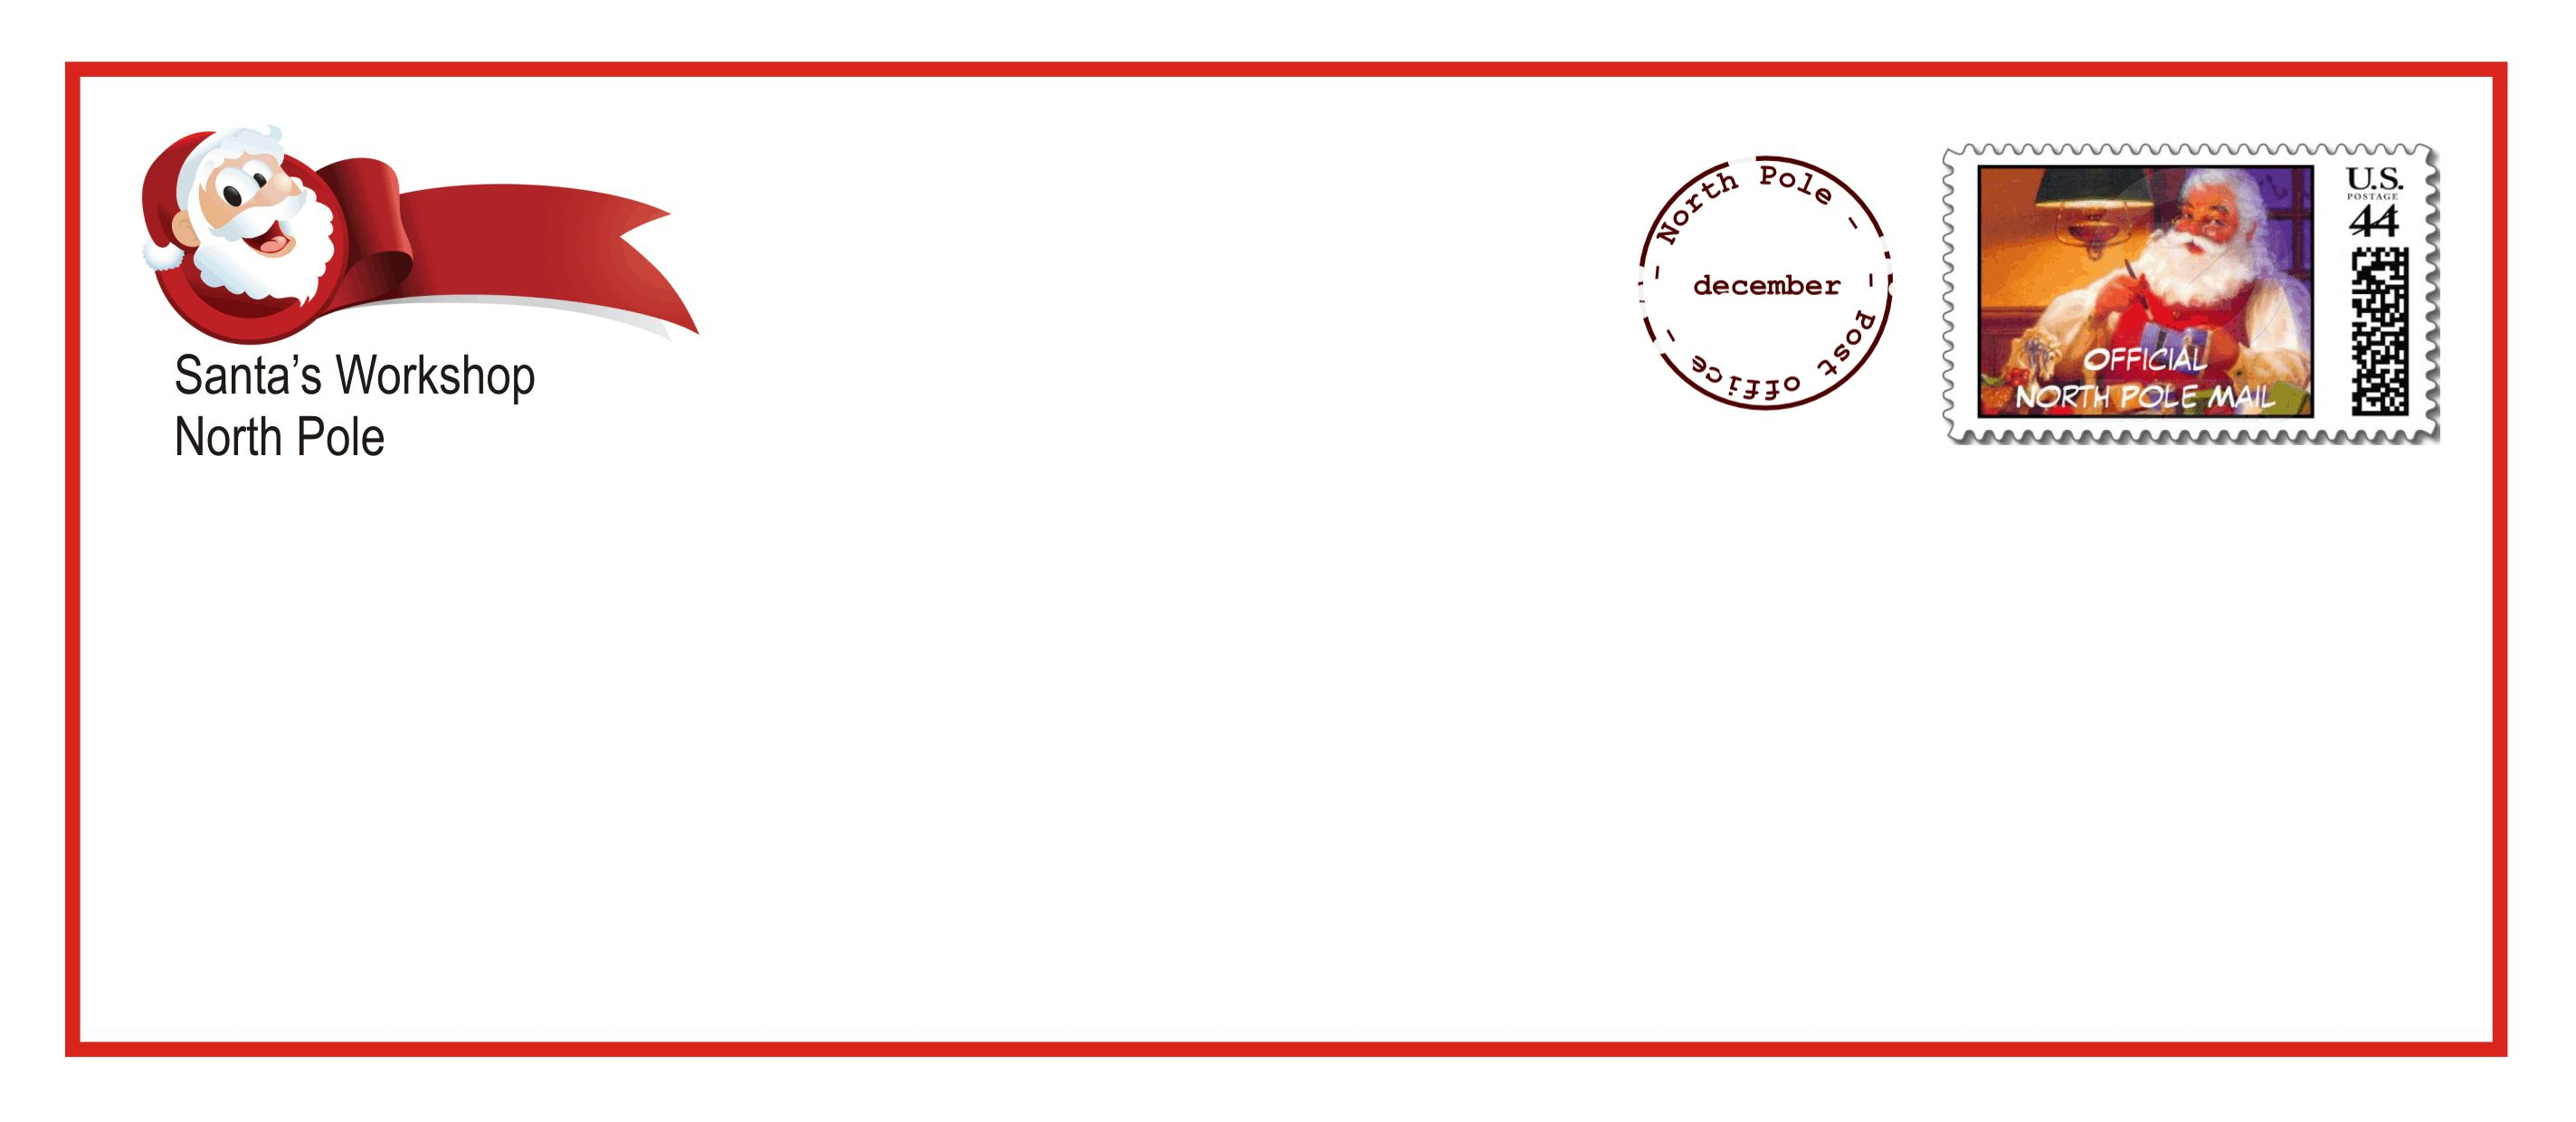 Free Letter to Santa Template Printable - Printable Santa Letter Envelopes that E with the Upgraded Letter